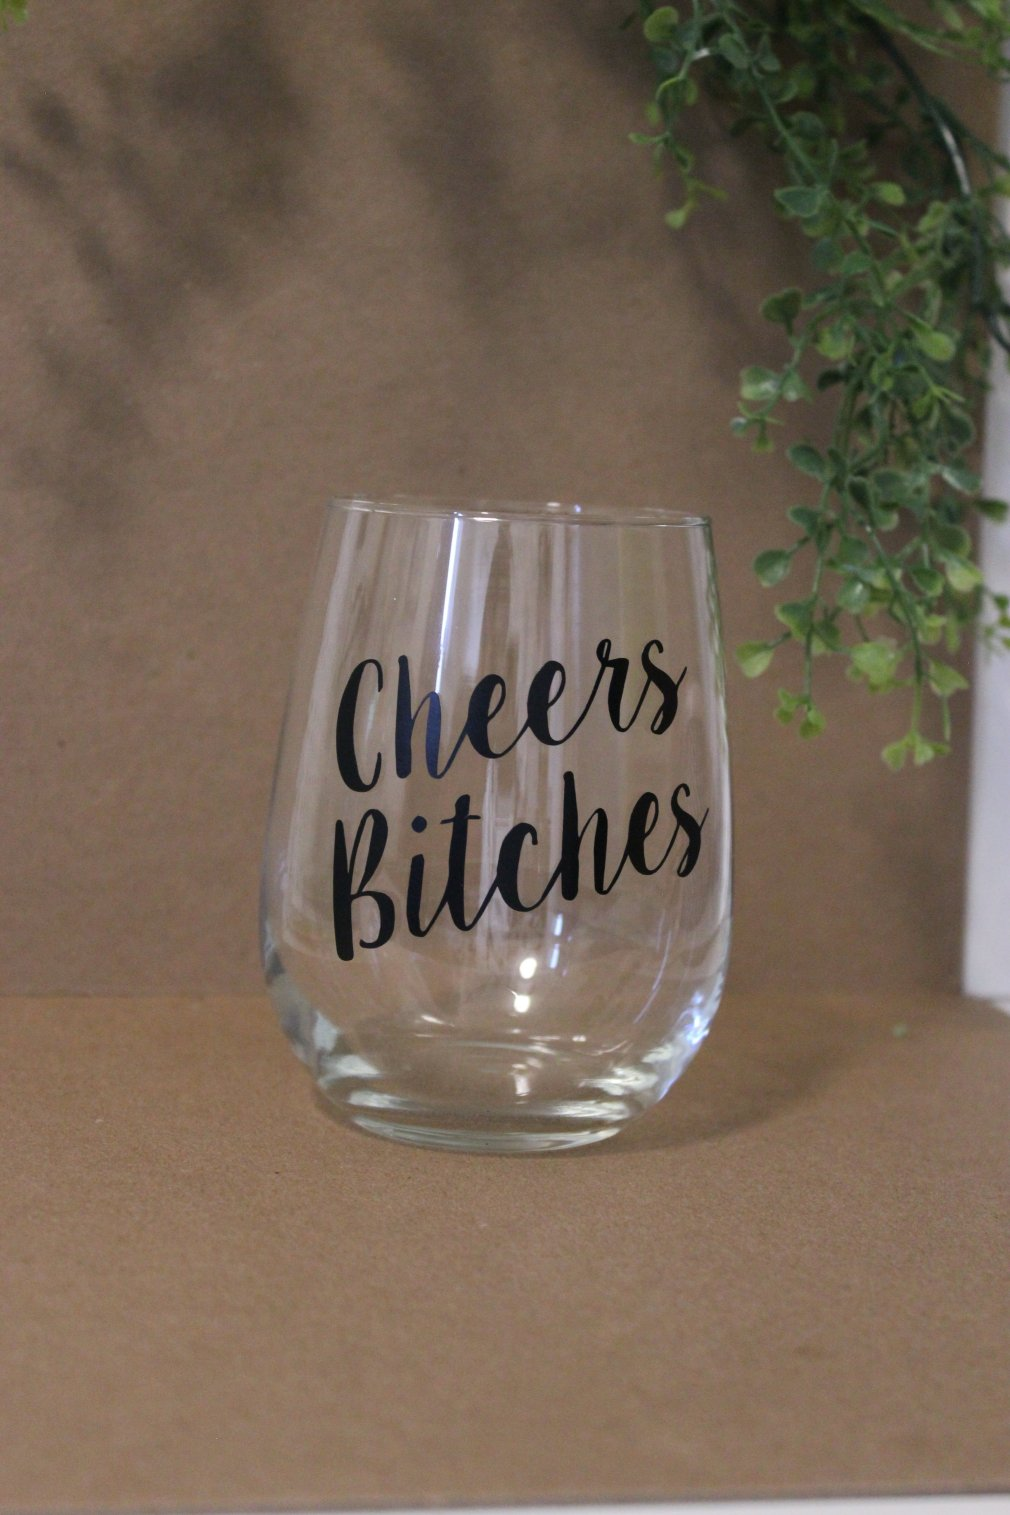 Wine Glasses - Cheers B*tches 00136